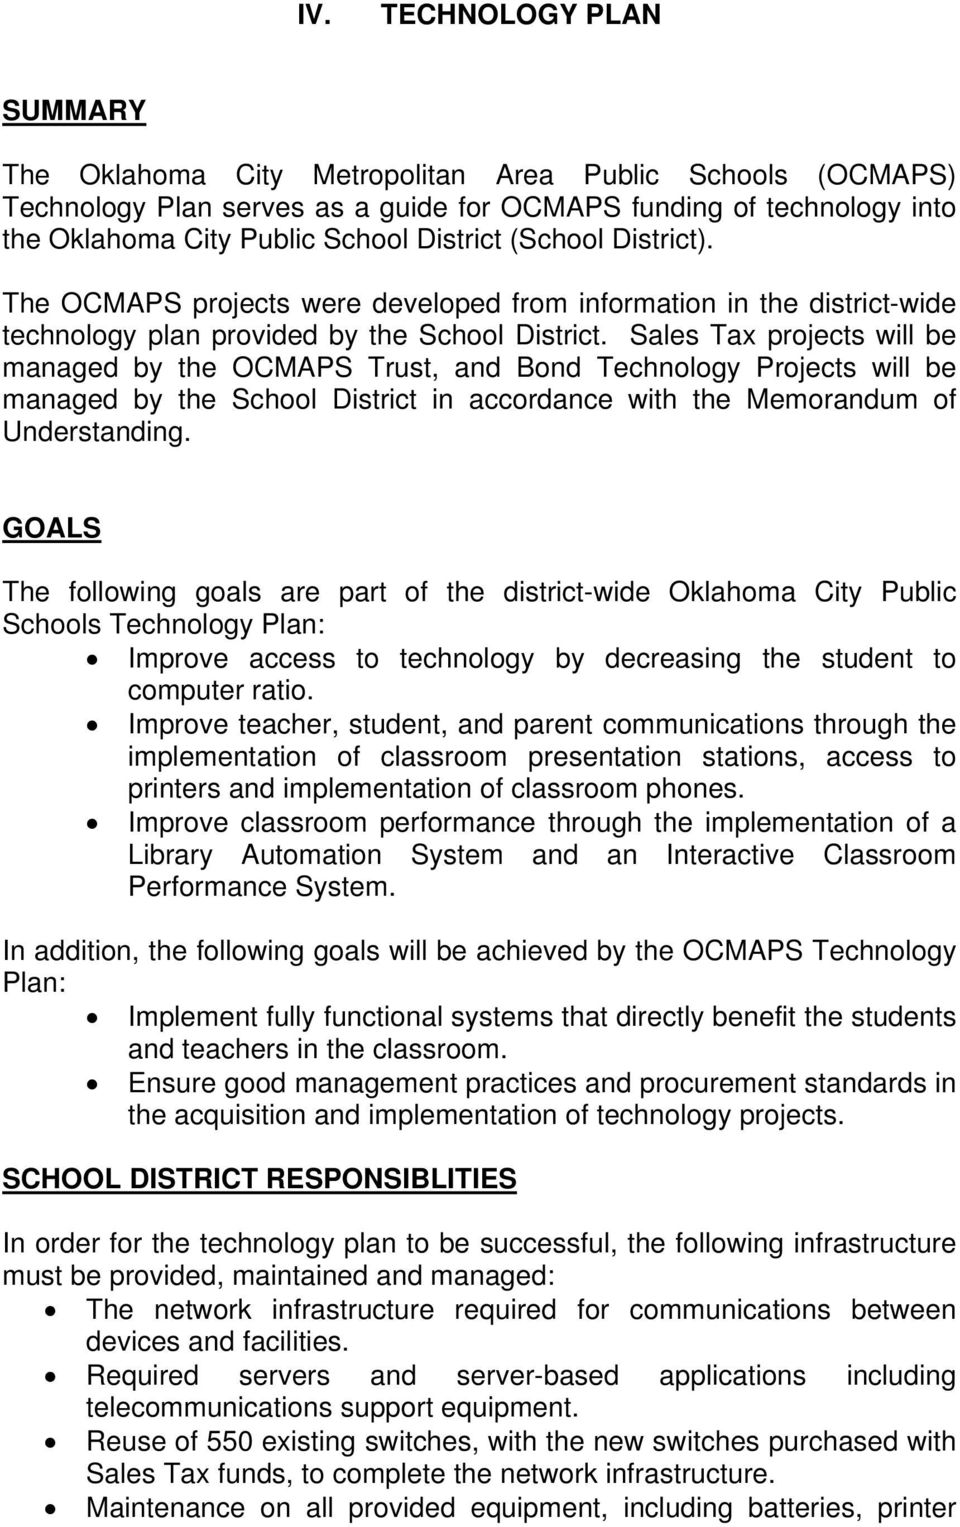 Sales Tax projects will be managed by the OCMAPS Trust, and Bond Technology Projects will be managed by the School District in accordance with the Memorandum of Understanding.